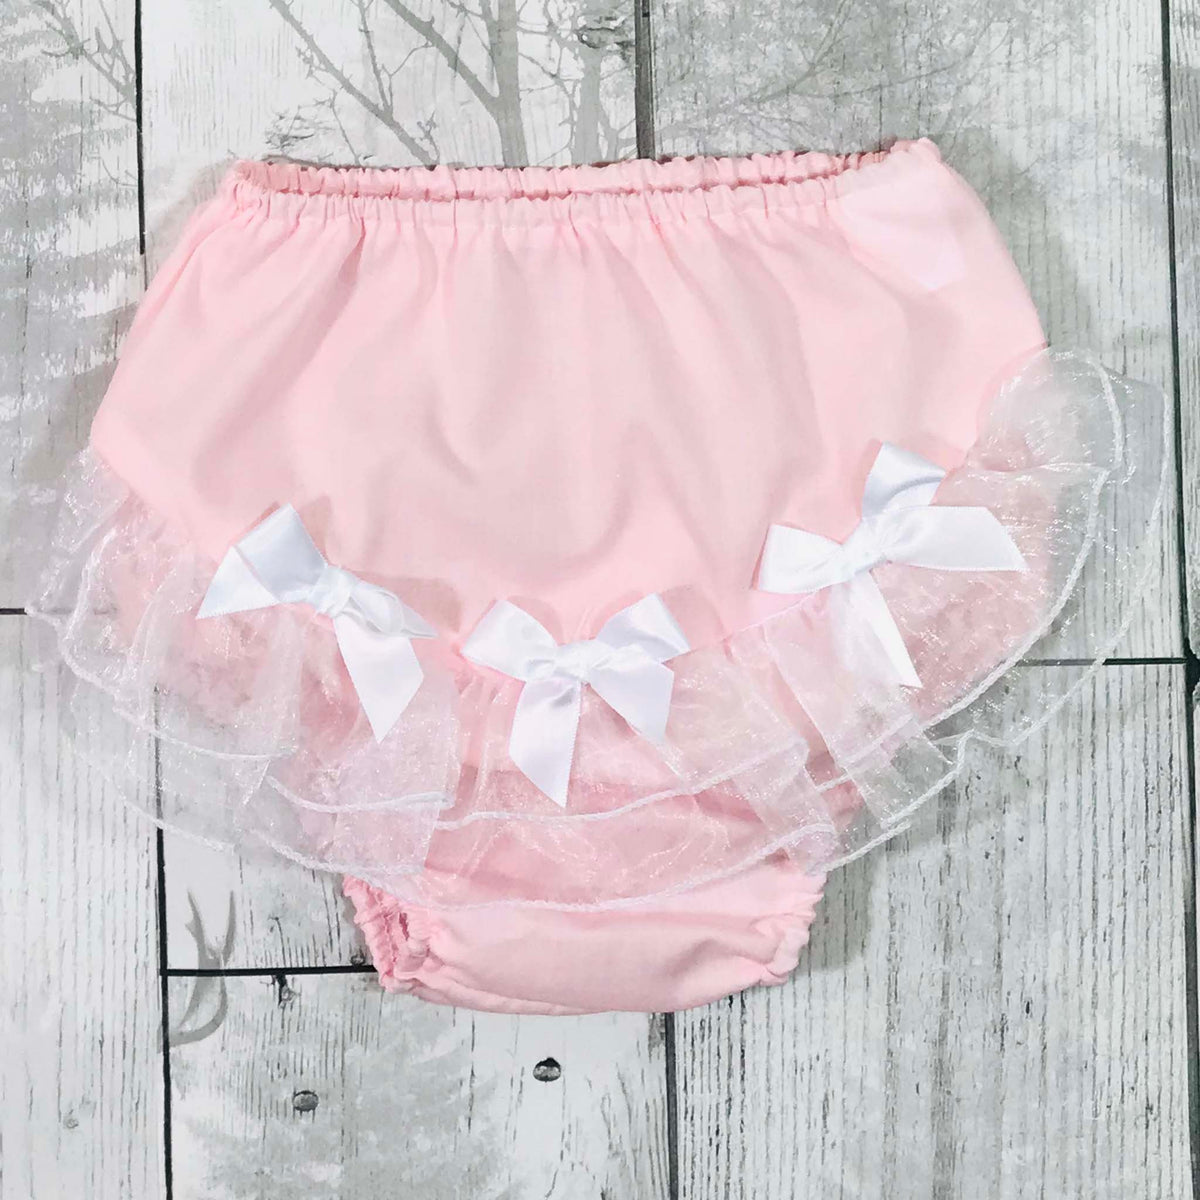 quality products detailing big discount of 2019 Baby Frilly Knickers and Fancy Nappy Pants – Tagged